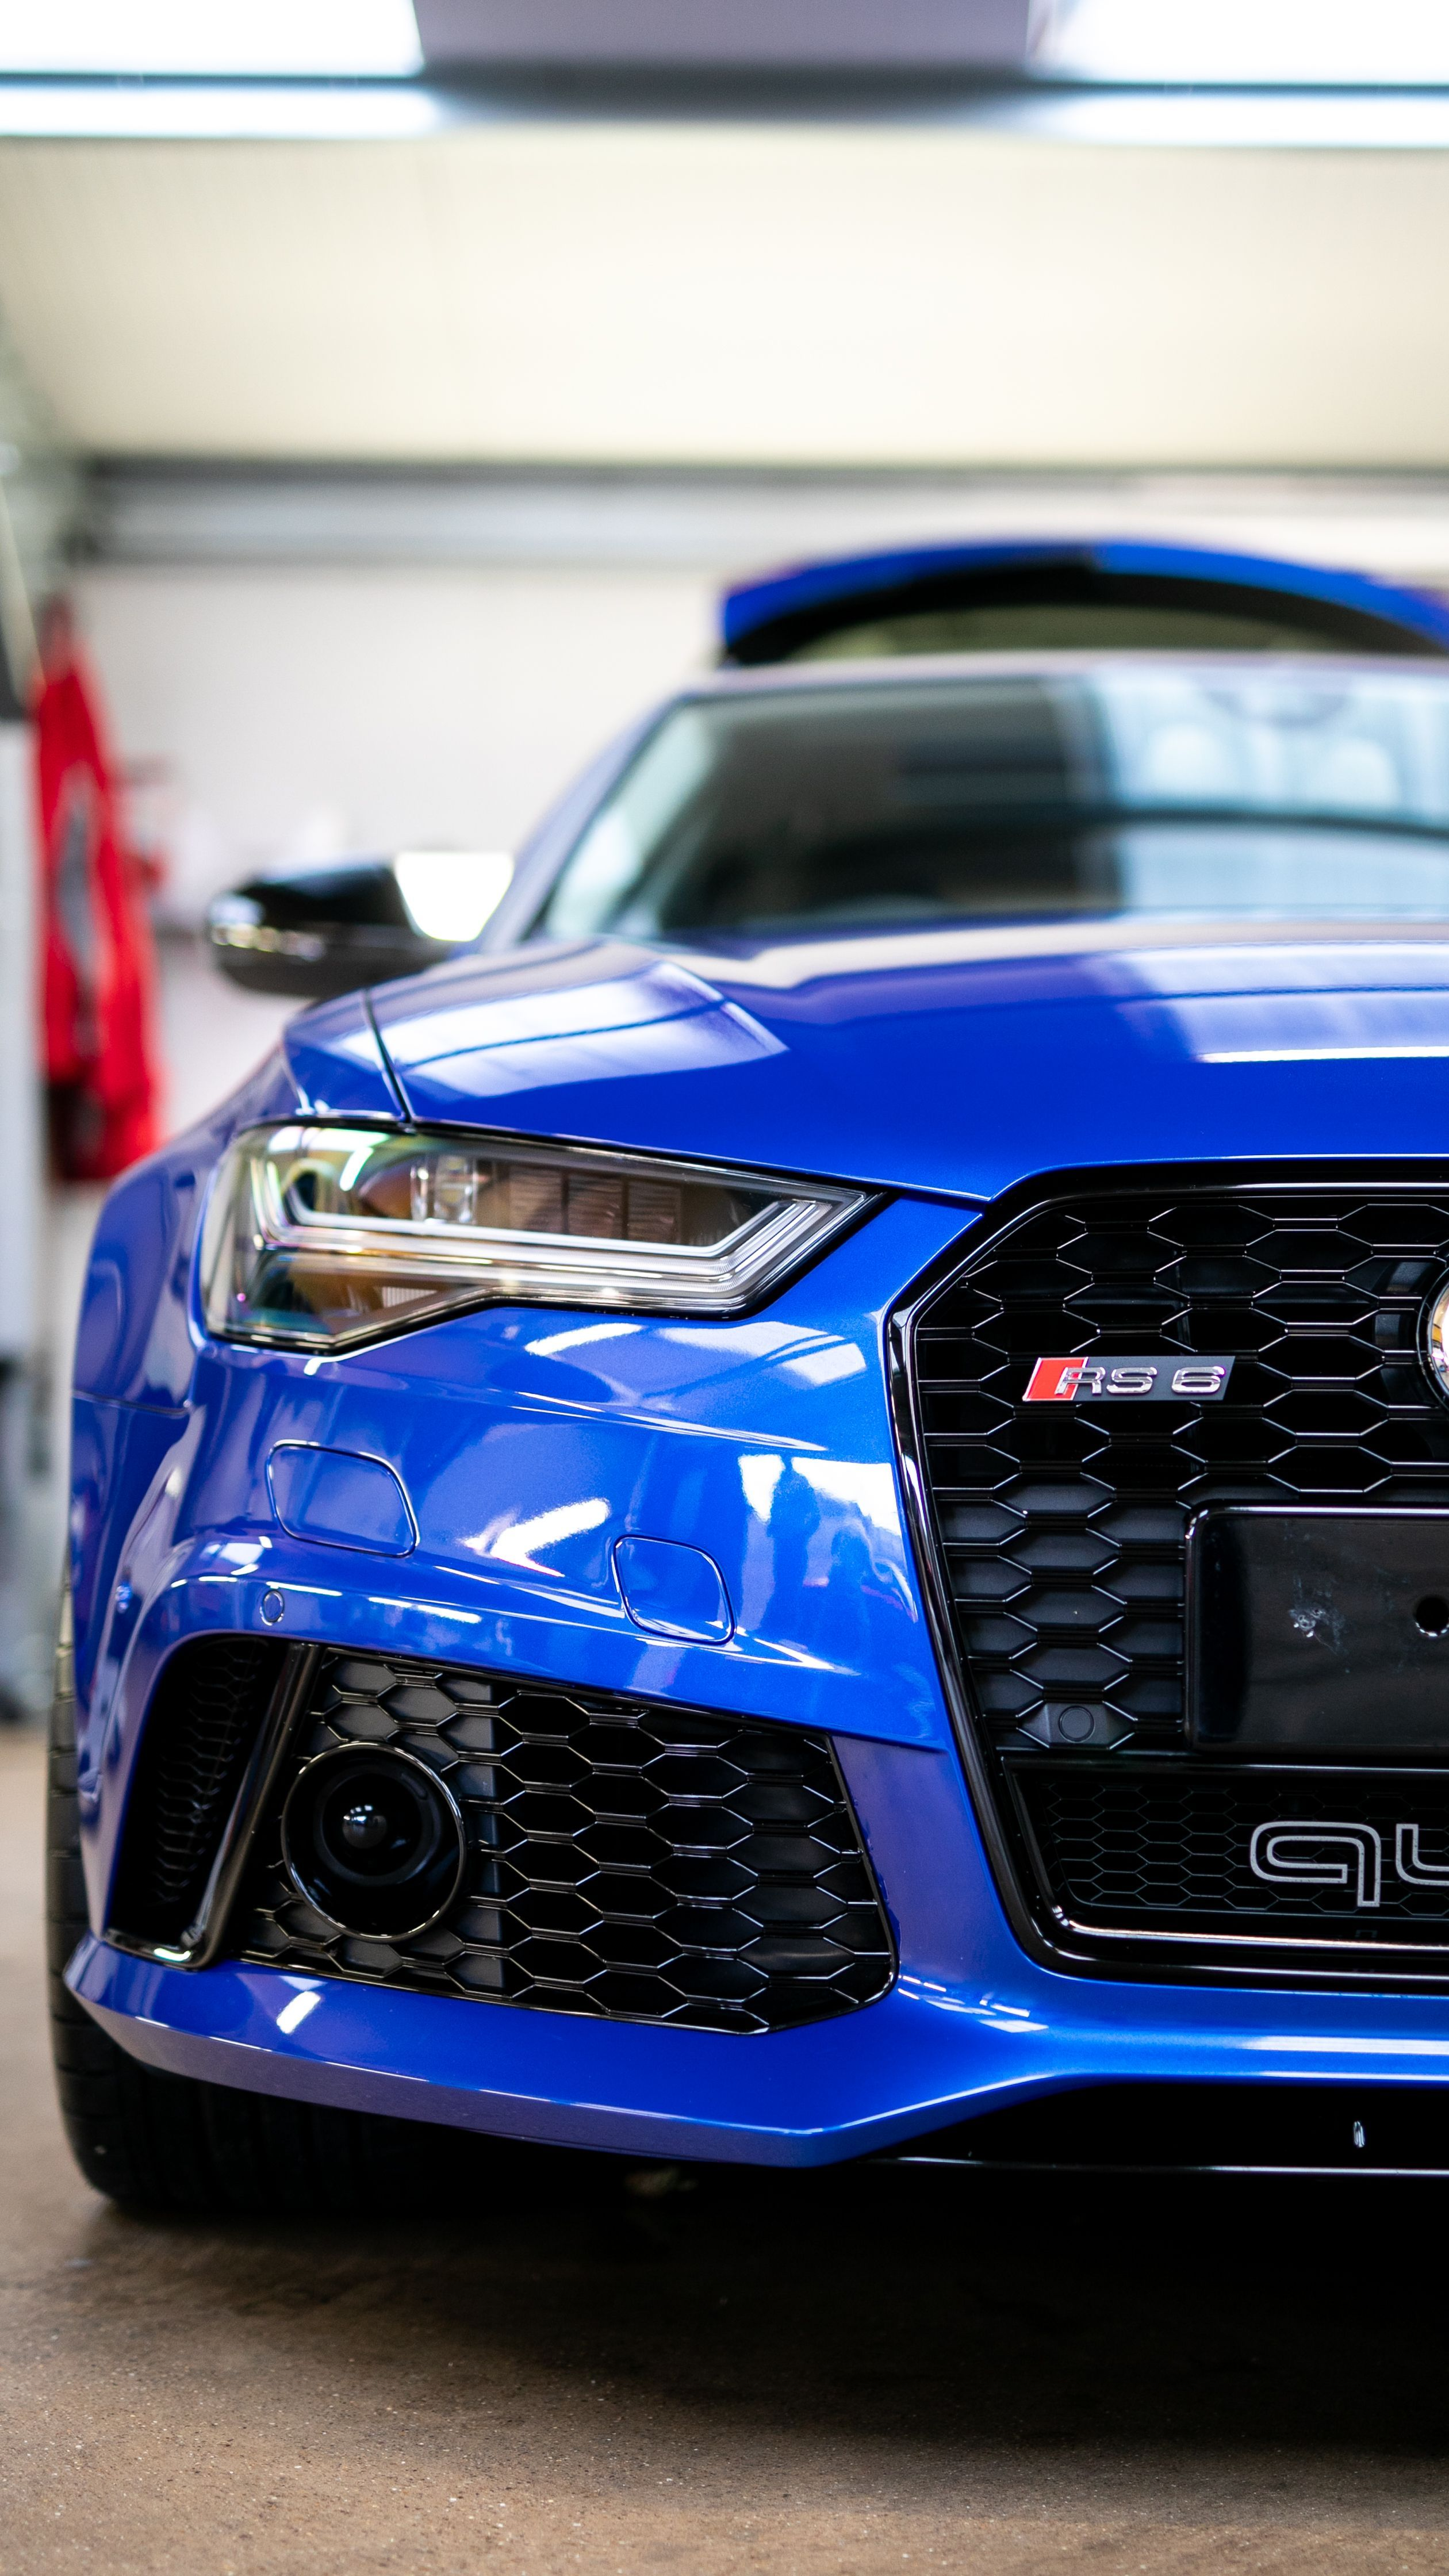 New Audi Rs6 Avant 2020 First Look Youtube Audi Rs6 Audi Rs Audi